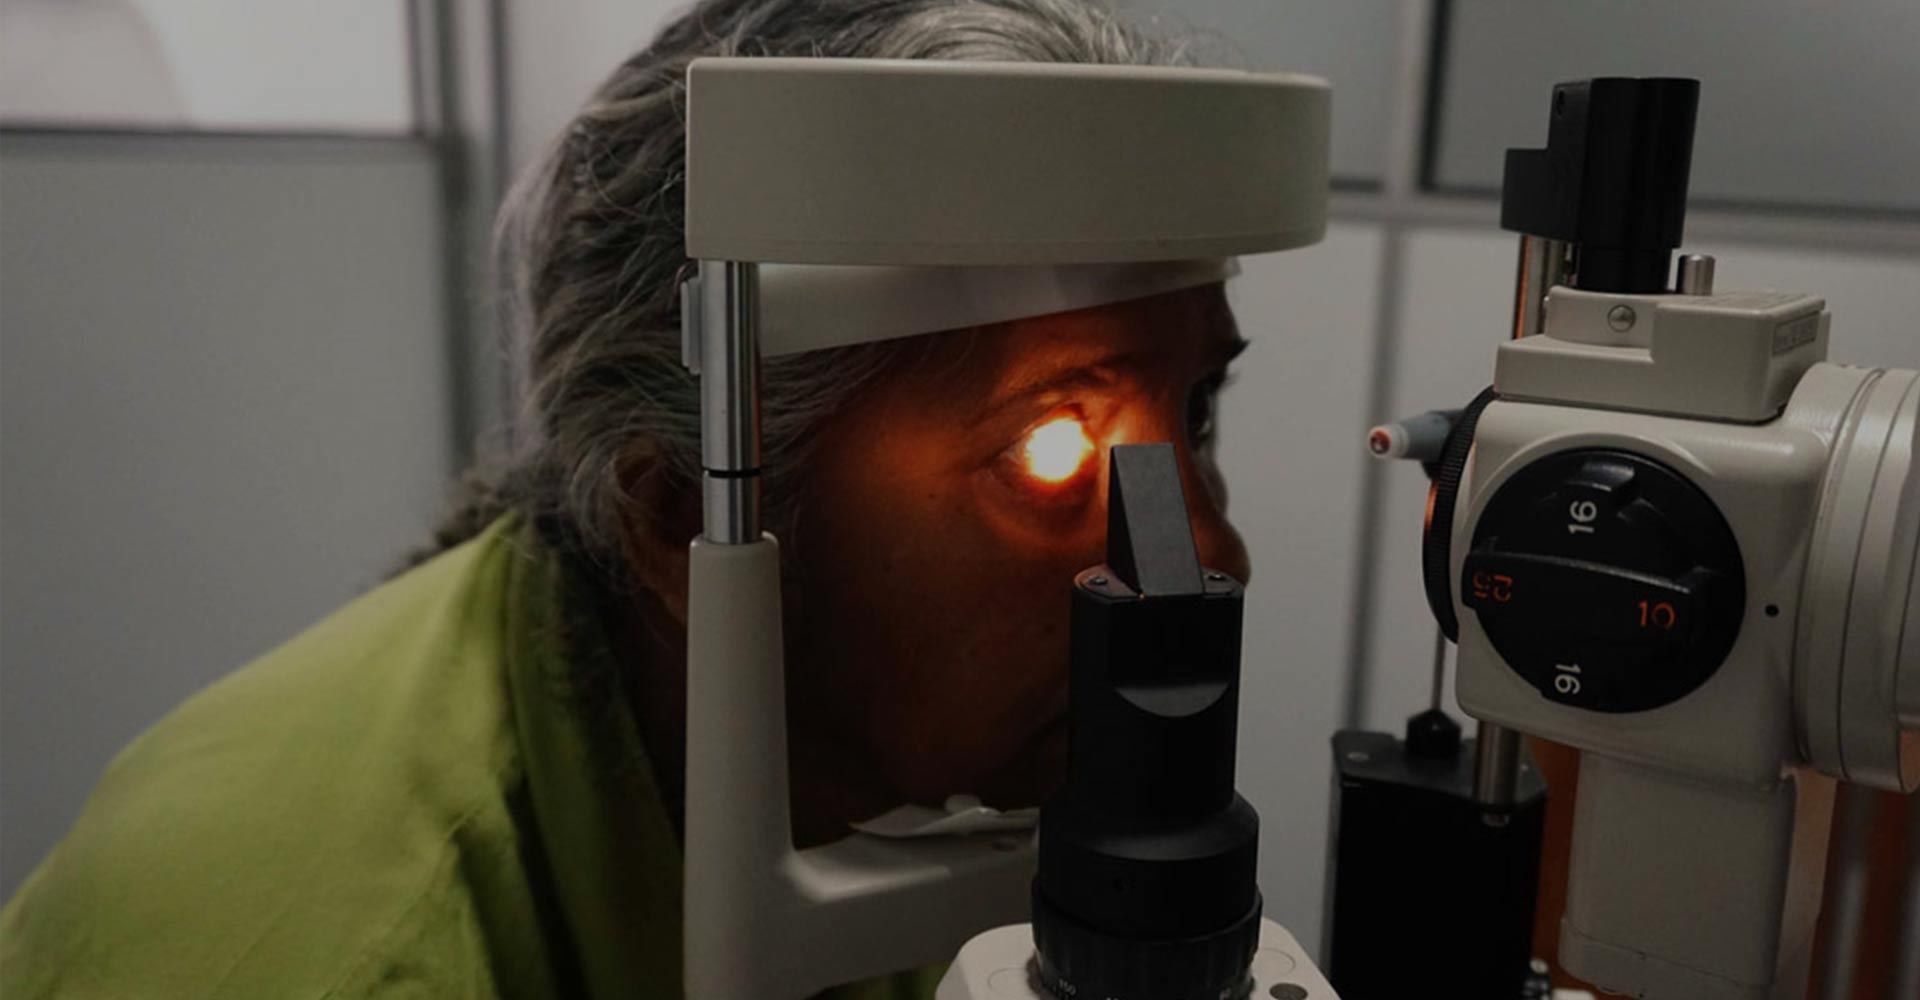 Organizing eye checkup camps and spectacles